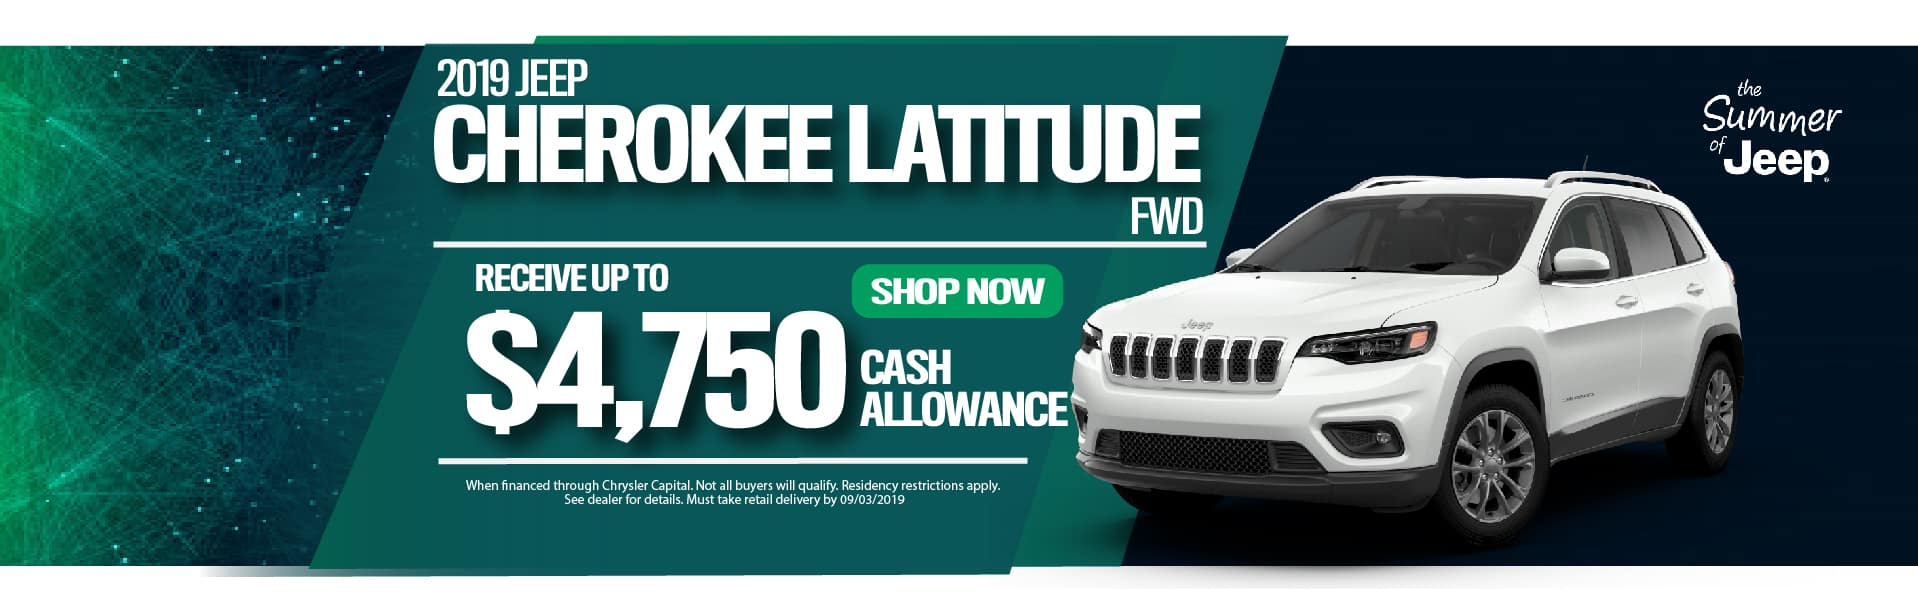 Jeep Dealers Cleveland >> Jacky Jones Chrysler Dodge Jeep Ram Chrysler Dodge Jeep Ram